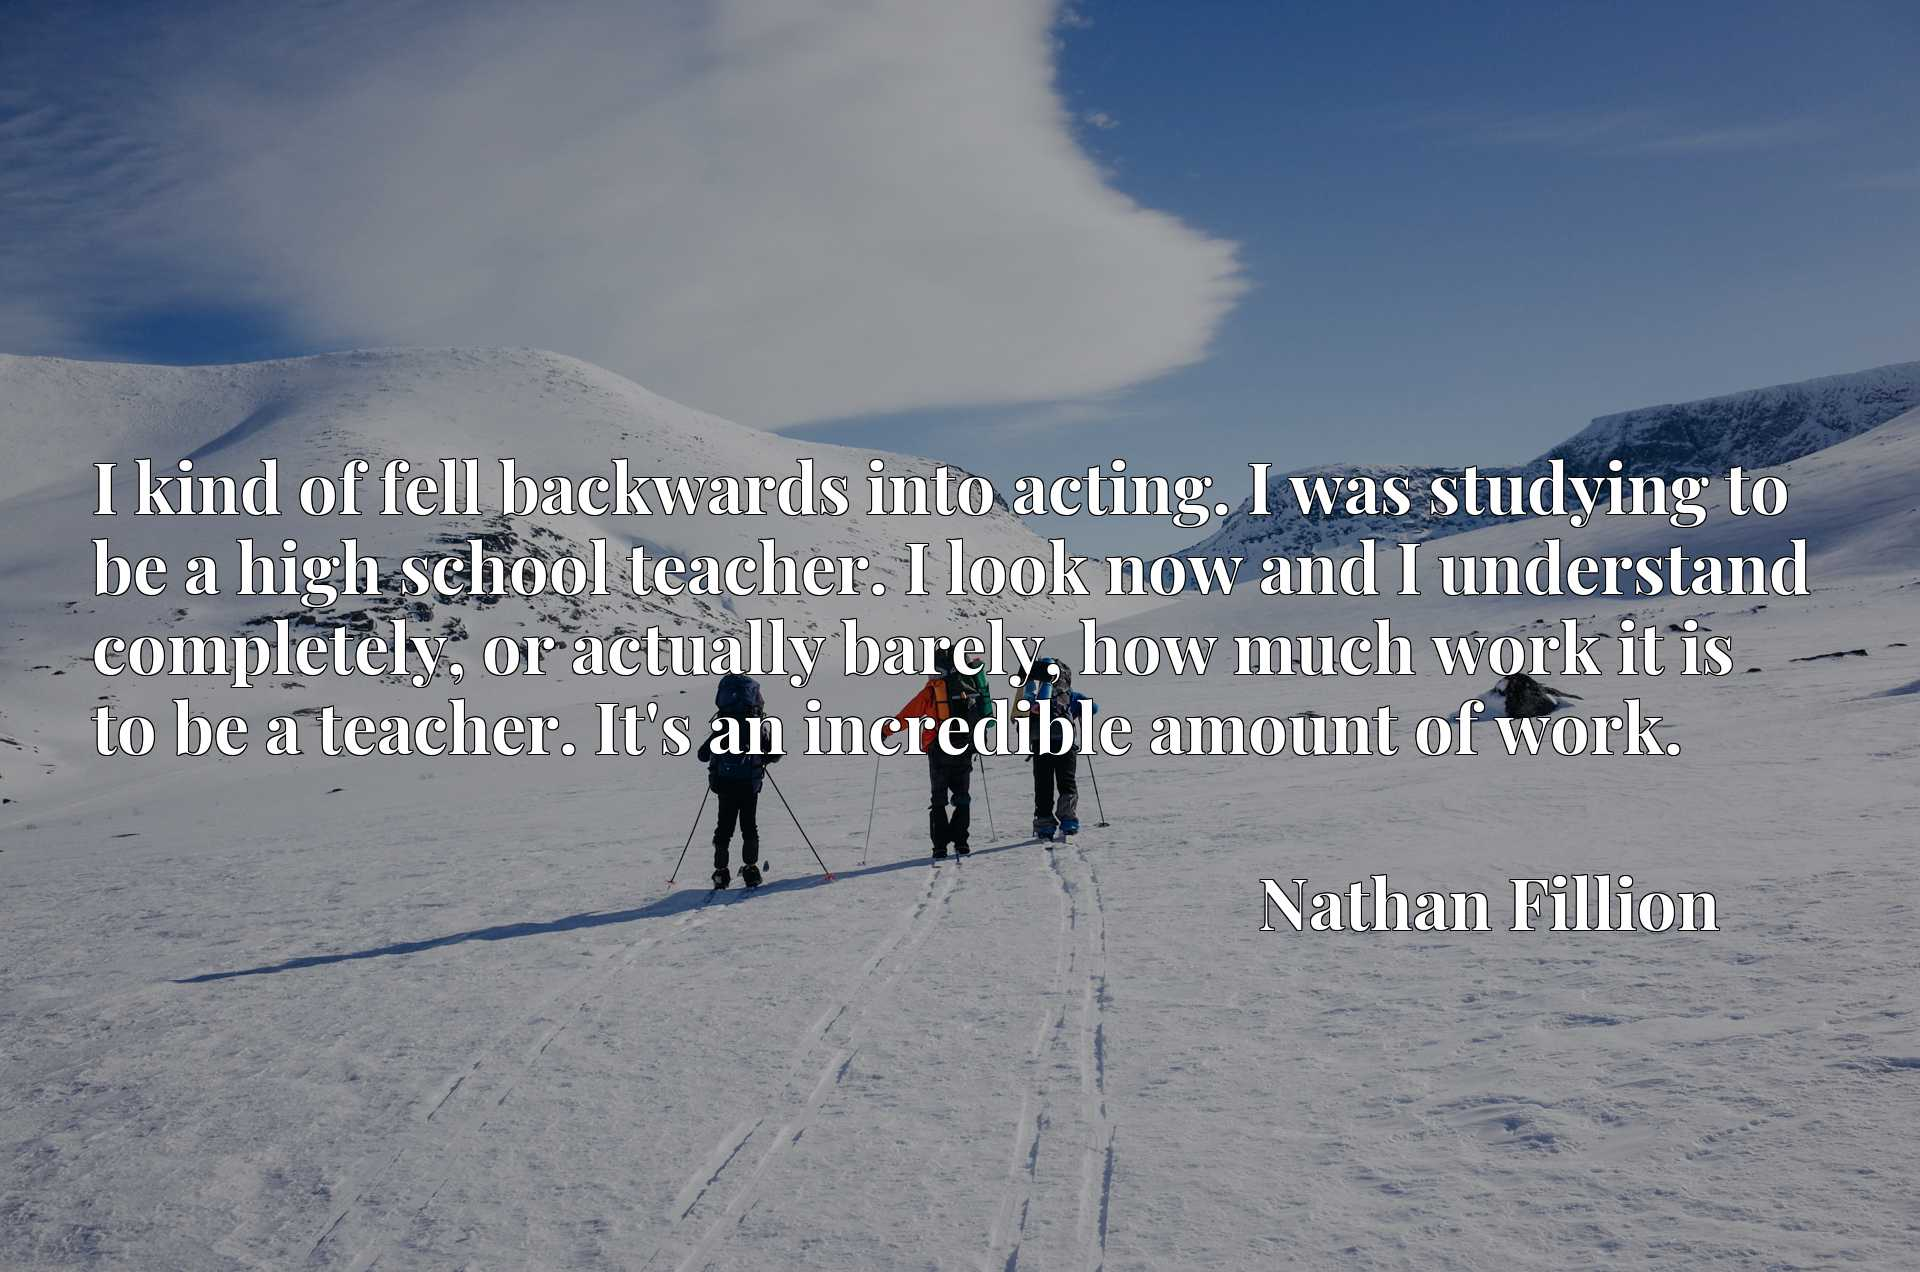 Quote Picture :I kind of fell backwards into acting. I was studying to be a high school teacher. I look now and I understand completely, or actually barely, how much work it is to be a teacher. It's an incredible amount of work.